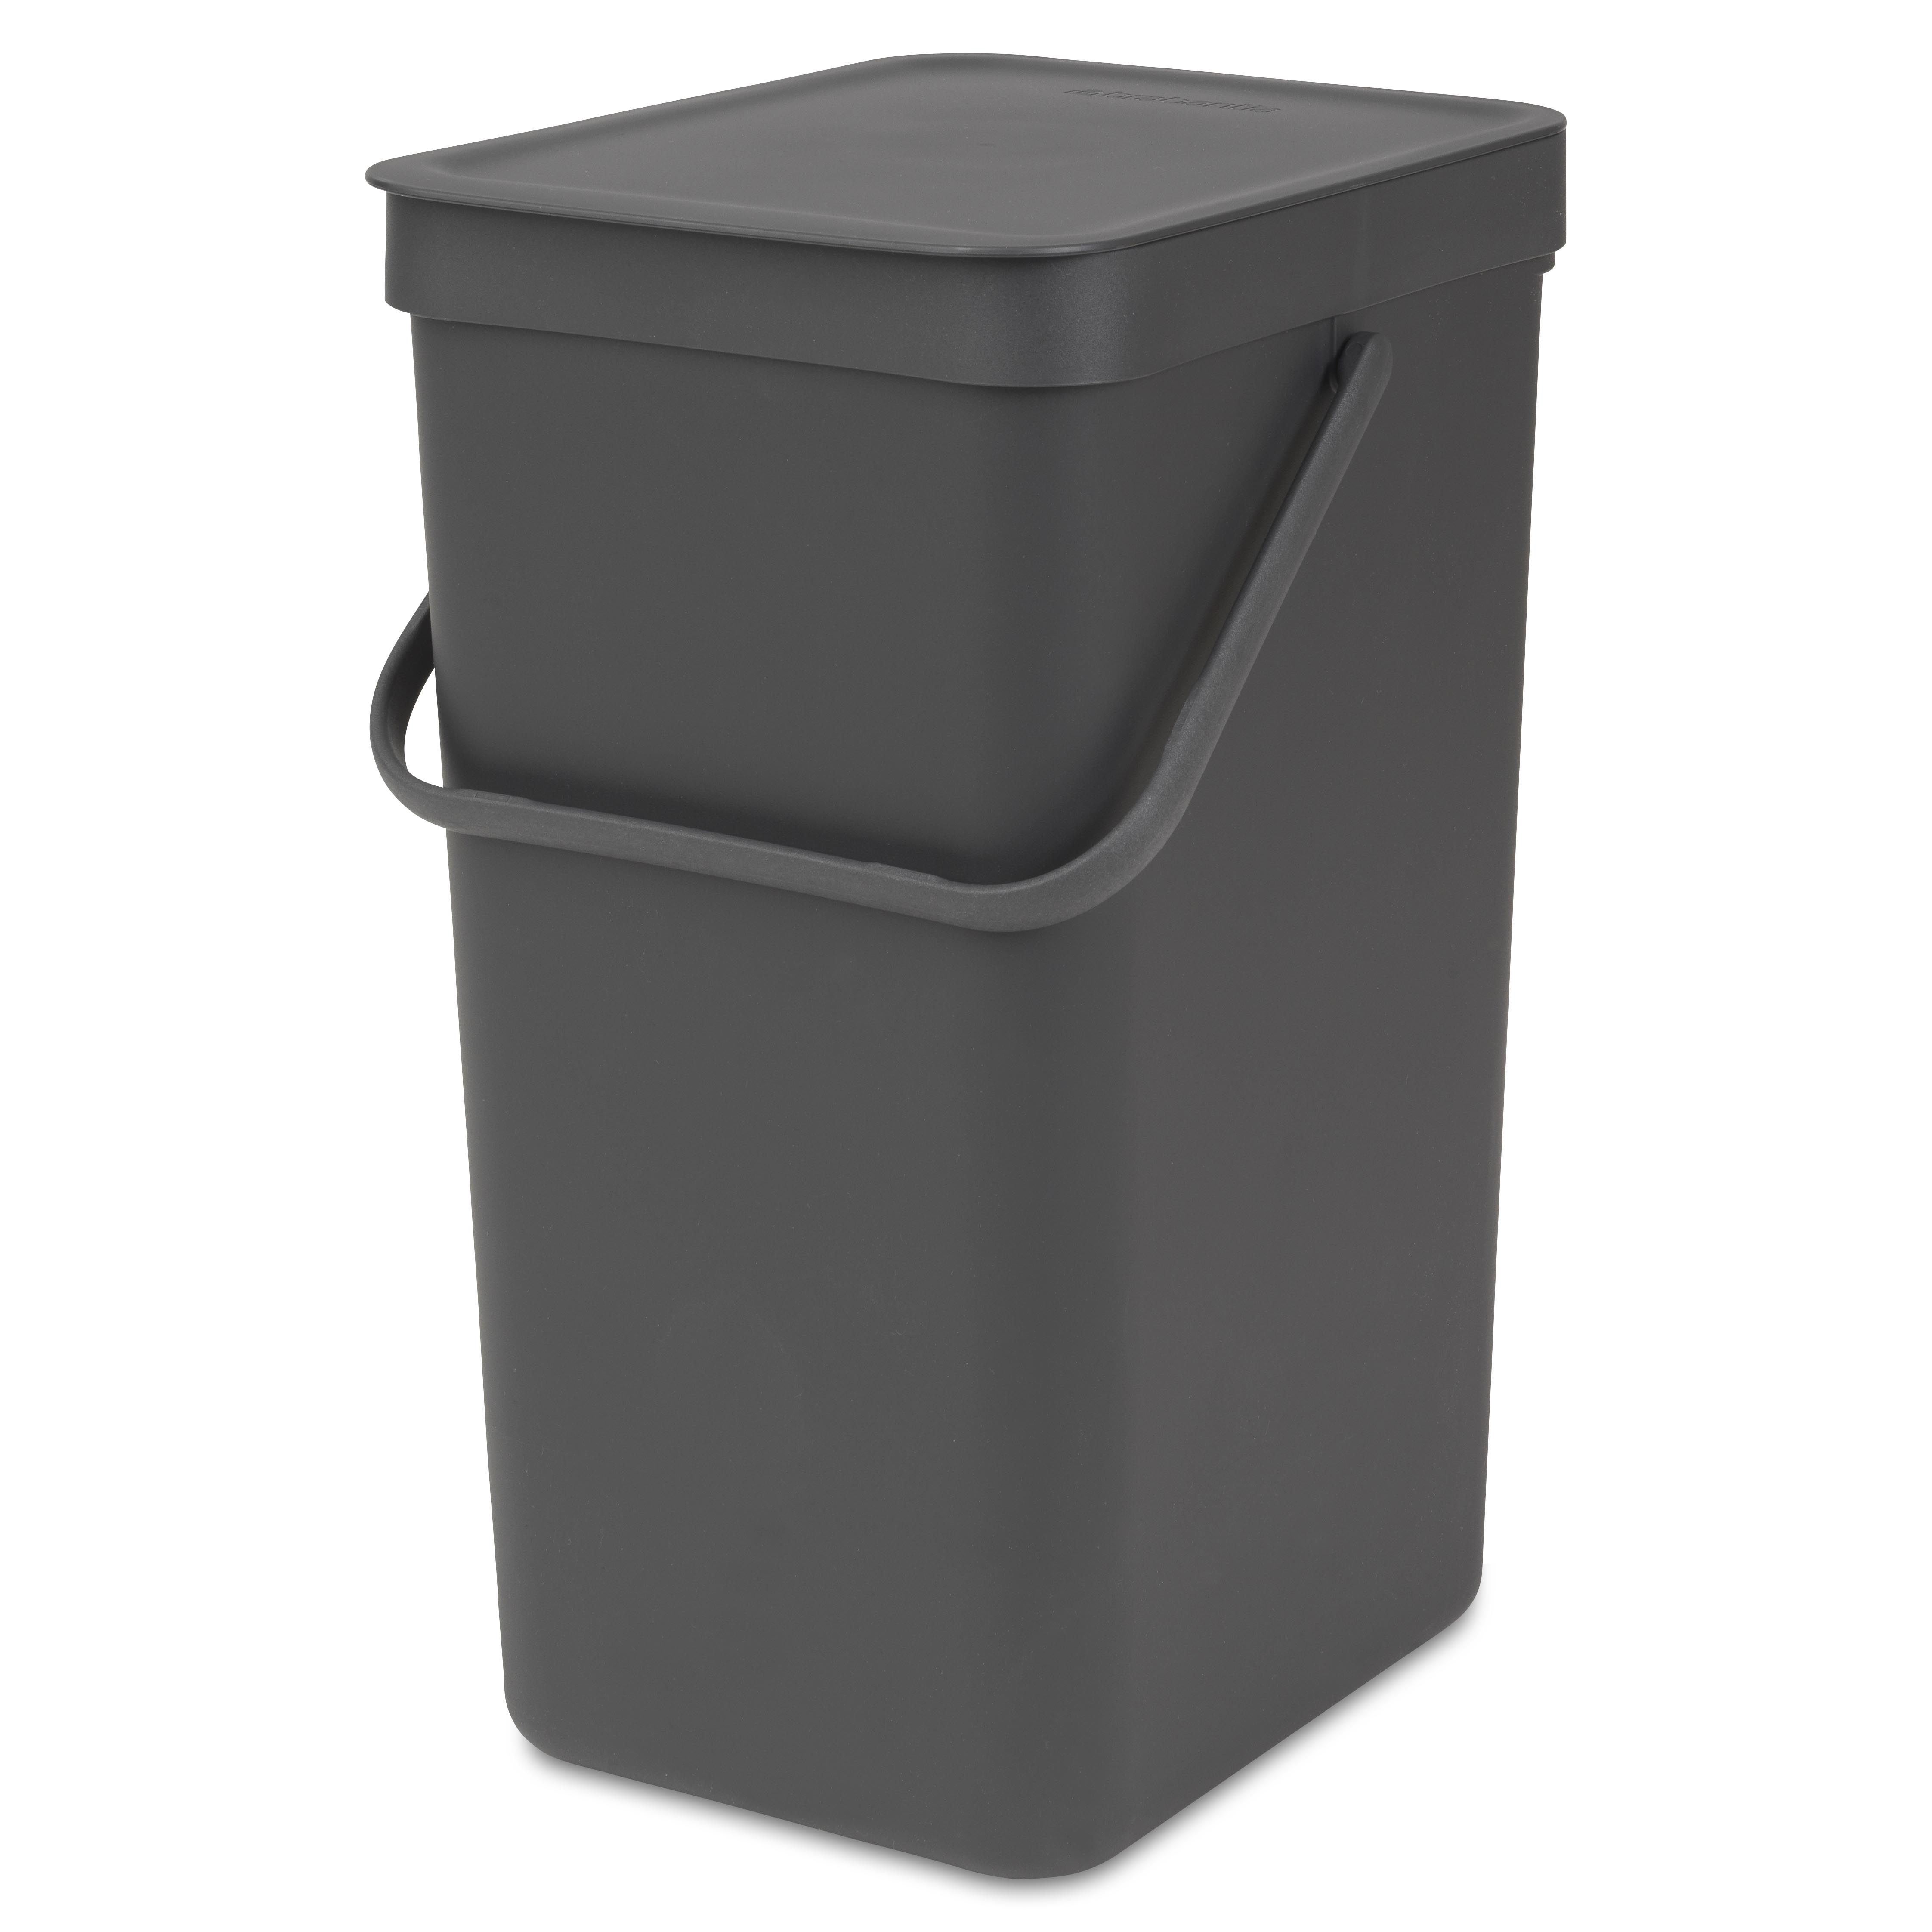 Winsome Bins  Bin Liners  Household Cleaning  Home Furnishings  Home  With Goodlooking Brabantia Sort  Go Grey Plastic Rectangular Recycling With Endearing Kew Gardens P Value Also Garden Carts For Sale In Addition Garden Shades Cuprinol And Garden Maintenance Coventry As Well As Cheshire Garden Party Additionally Mandarin Garden Grays From Diycom With   Goodlooking Bins  Bin Liners  Household Cleaning  Home Furnishings  Home  With Endearing Brabantia Sort  Go Grey Plastic Rectangular Recycling And Winsome Kew Gardens P Value Also Garden Carts For Sale In Addition Garden Shades Cuprinol From Diycom